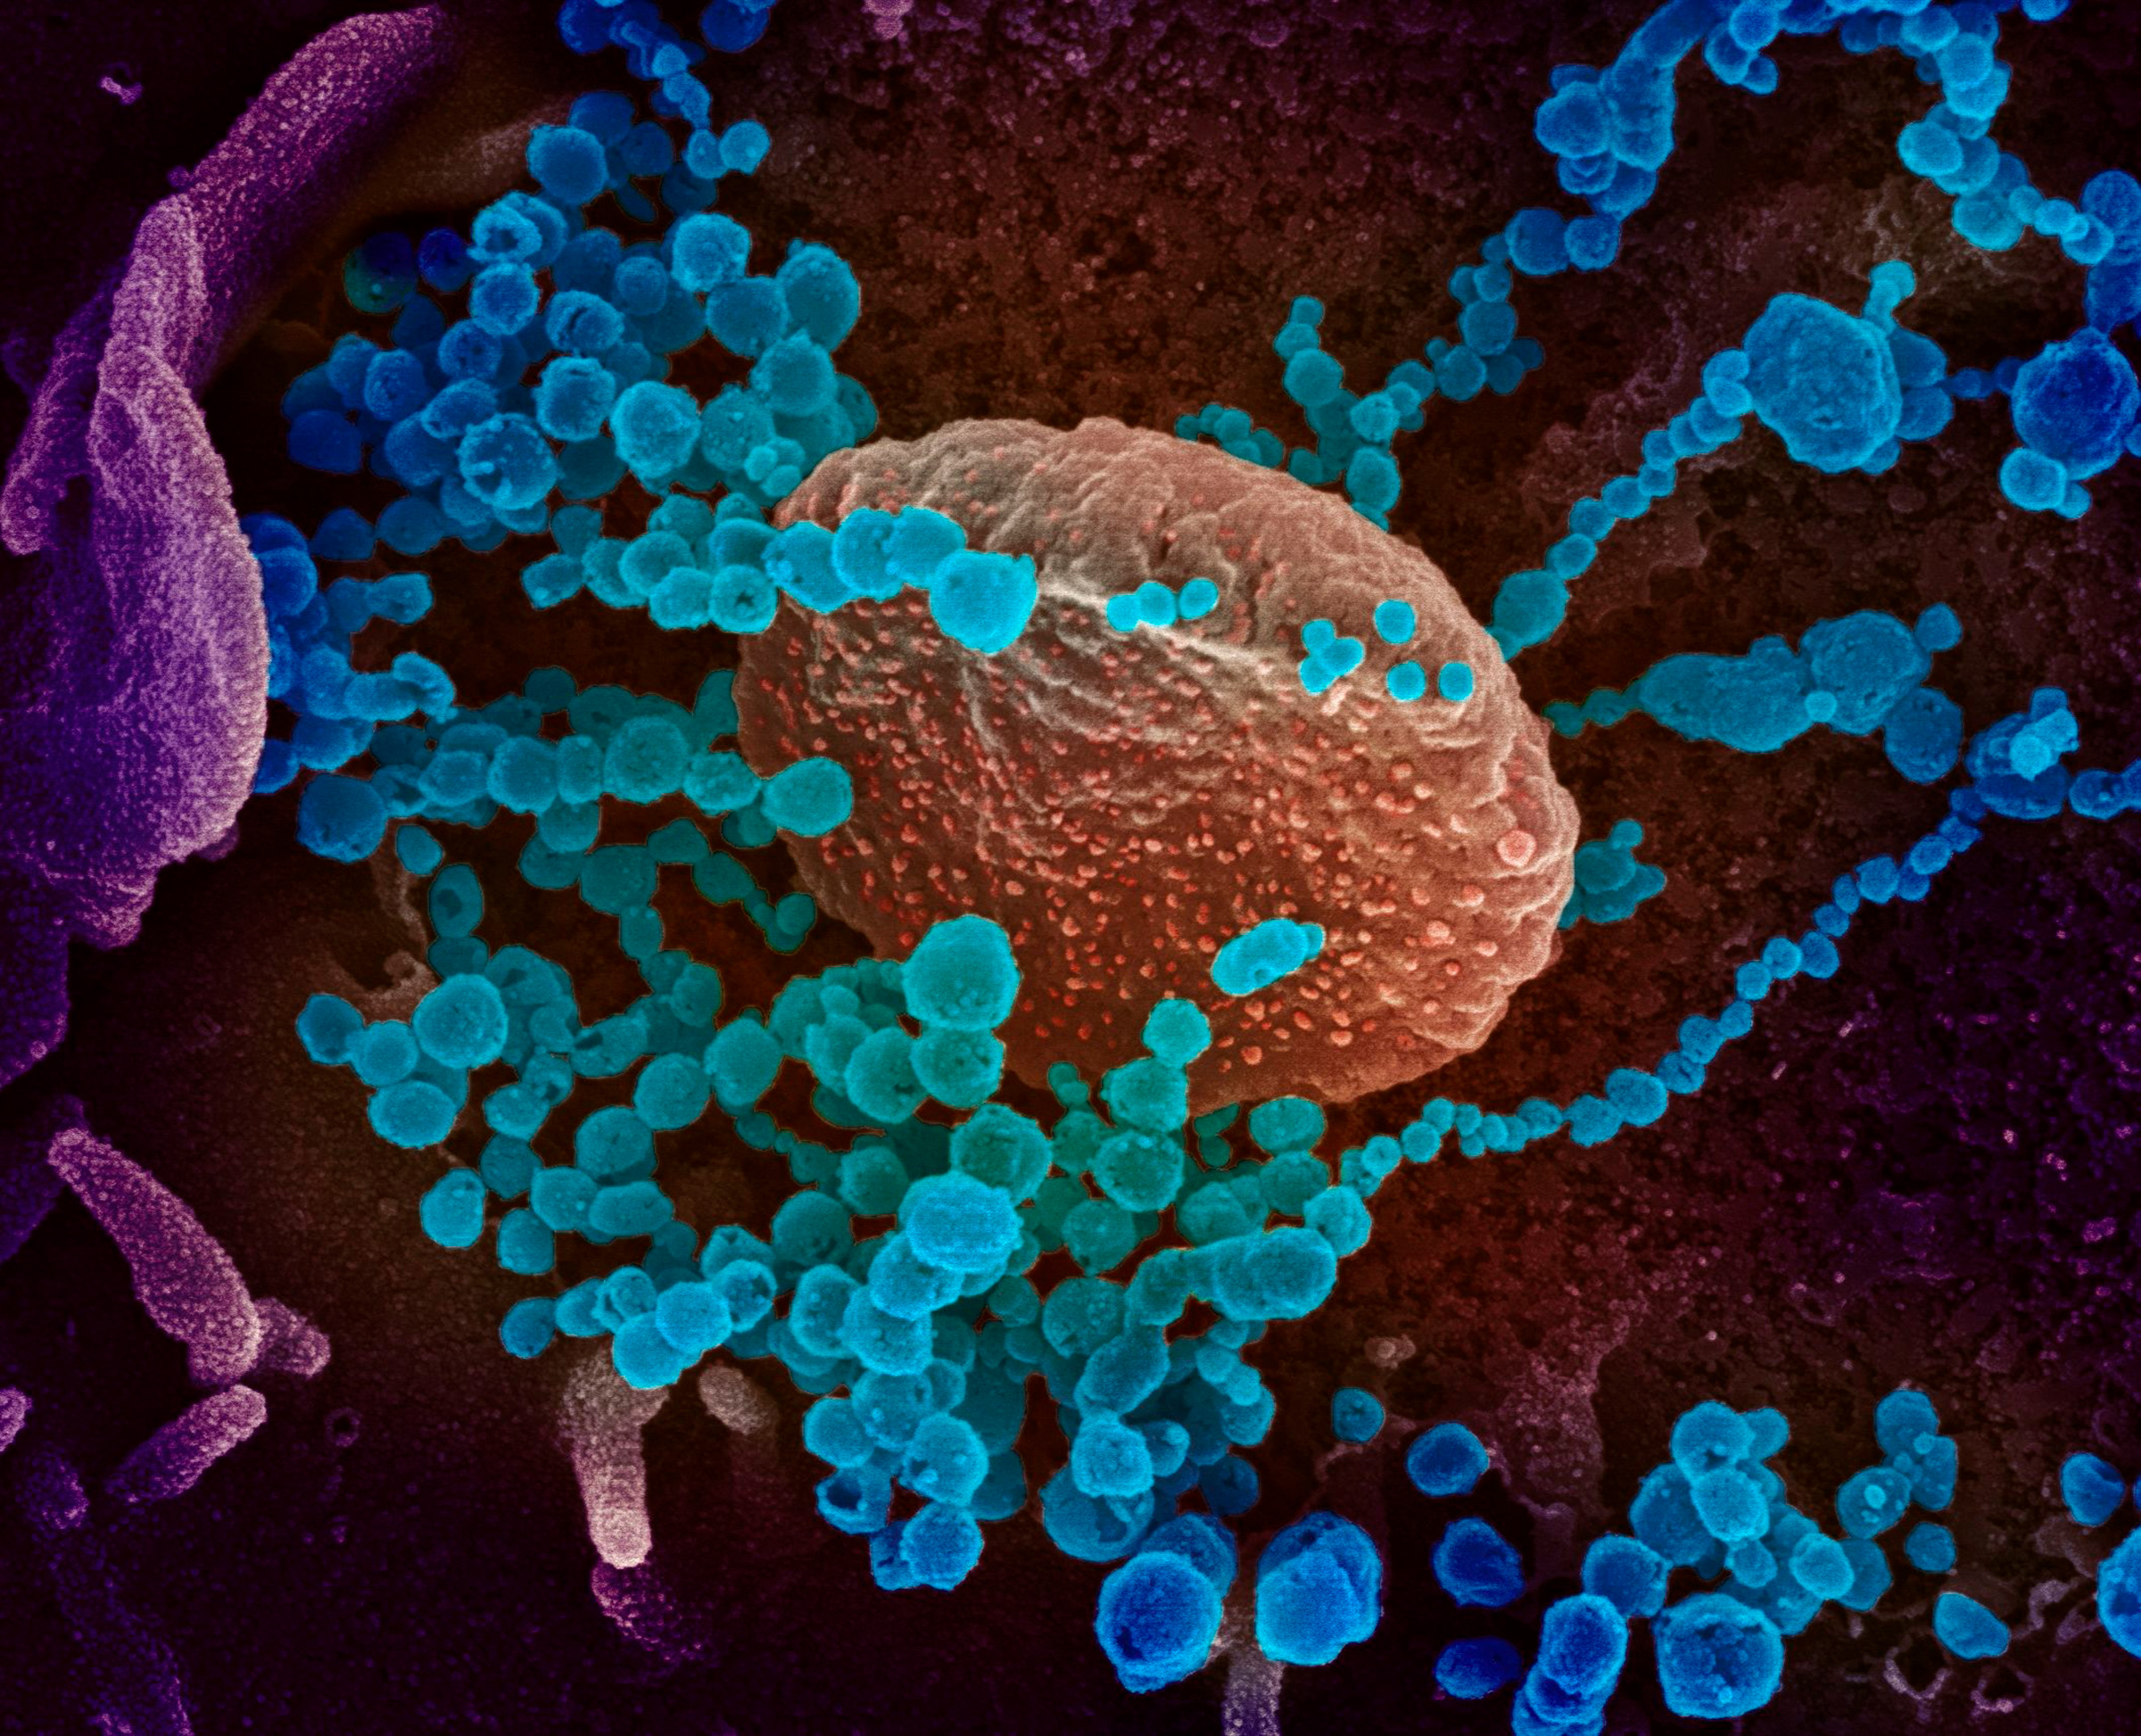 This image obtained on March 12 shows a scanning electron microscope image of SARS-CoV-2 (round blue objects) emerging from the surface of cells cultured in the lab, SARS-CoV-2, also known as 2019-nCoV, is the virus that causes COVID-19, the virus shown was isolated from a patient in the U.S.